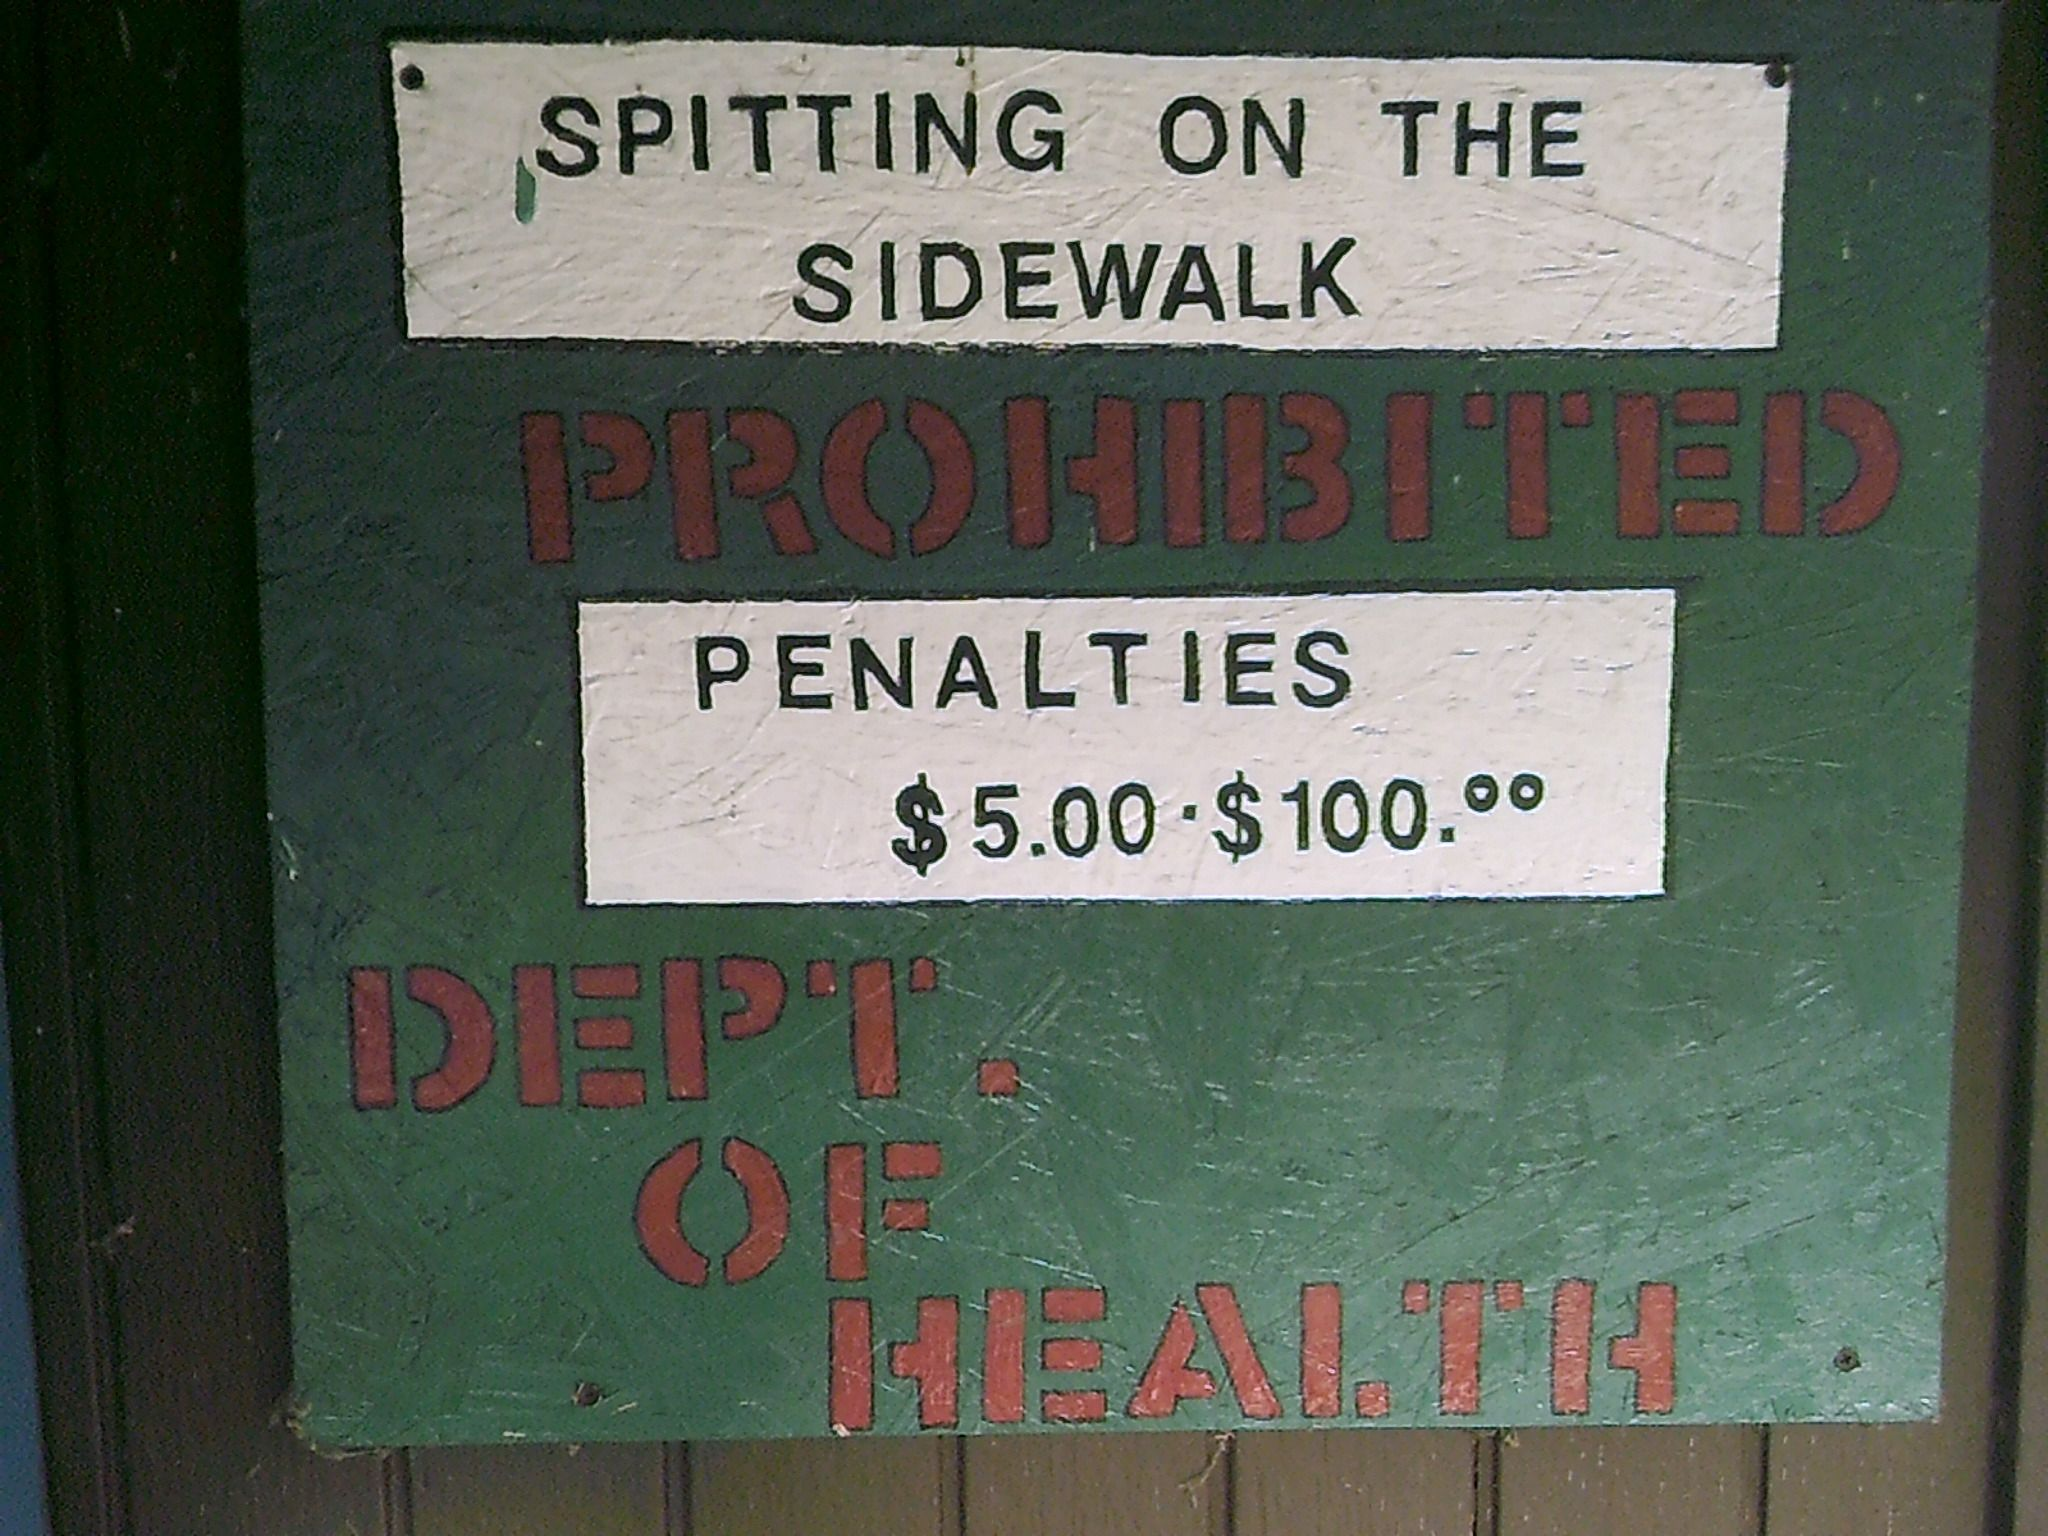 No Spitting on the Sidewalk